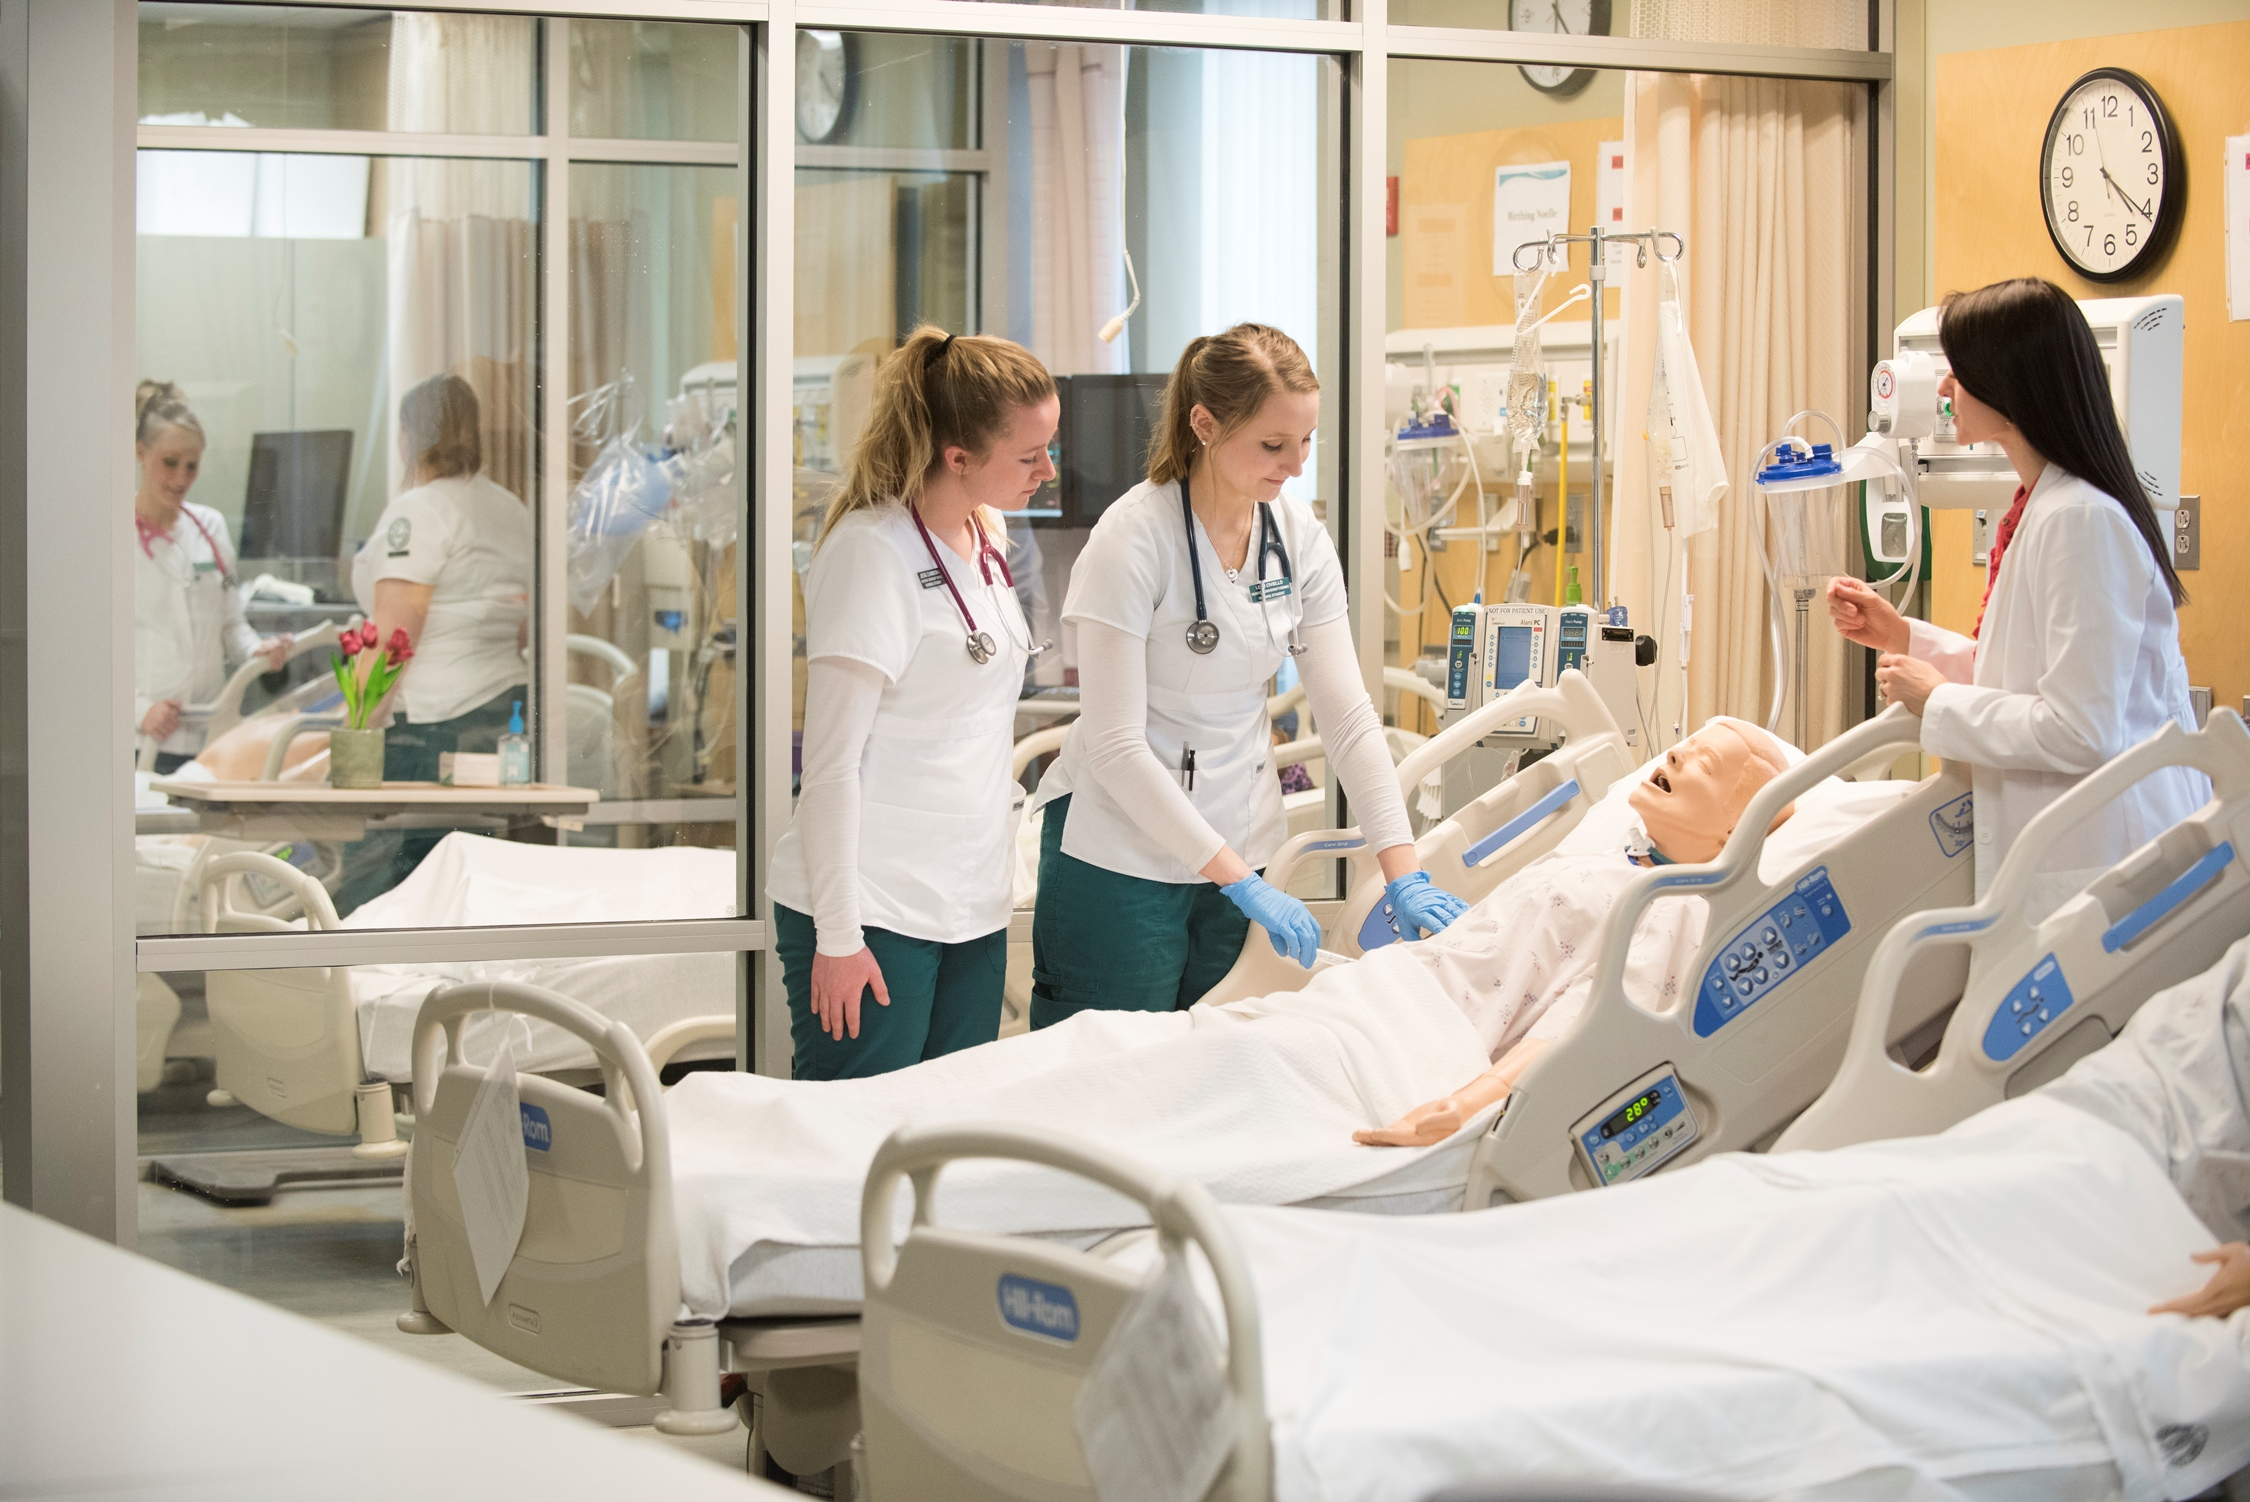 Students working in Nursing Simulation lab with staff